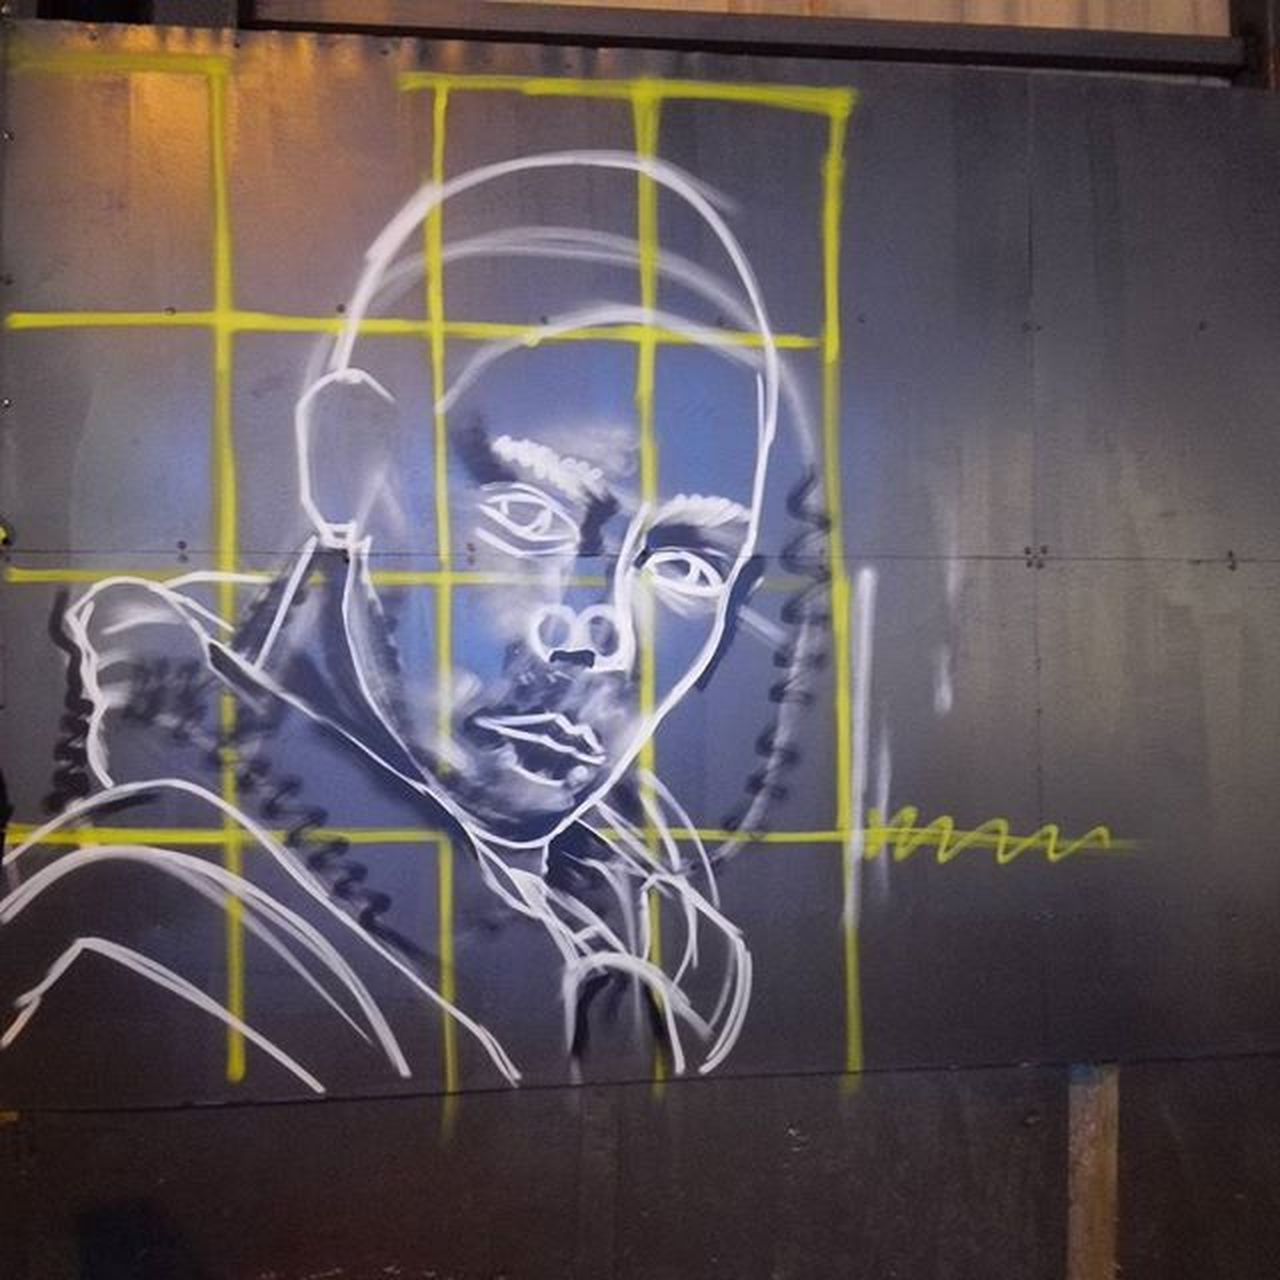 art, graffiti, creativity, art and craft, wall - building feature, built structure, human representation, building exterior, architecture, bicycle, auto post production filter, street art, wall, indoors, no people, day, metal, animal representation, yellow